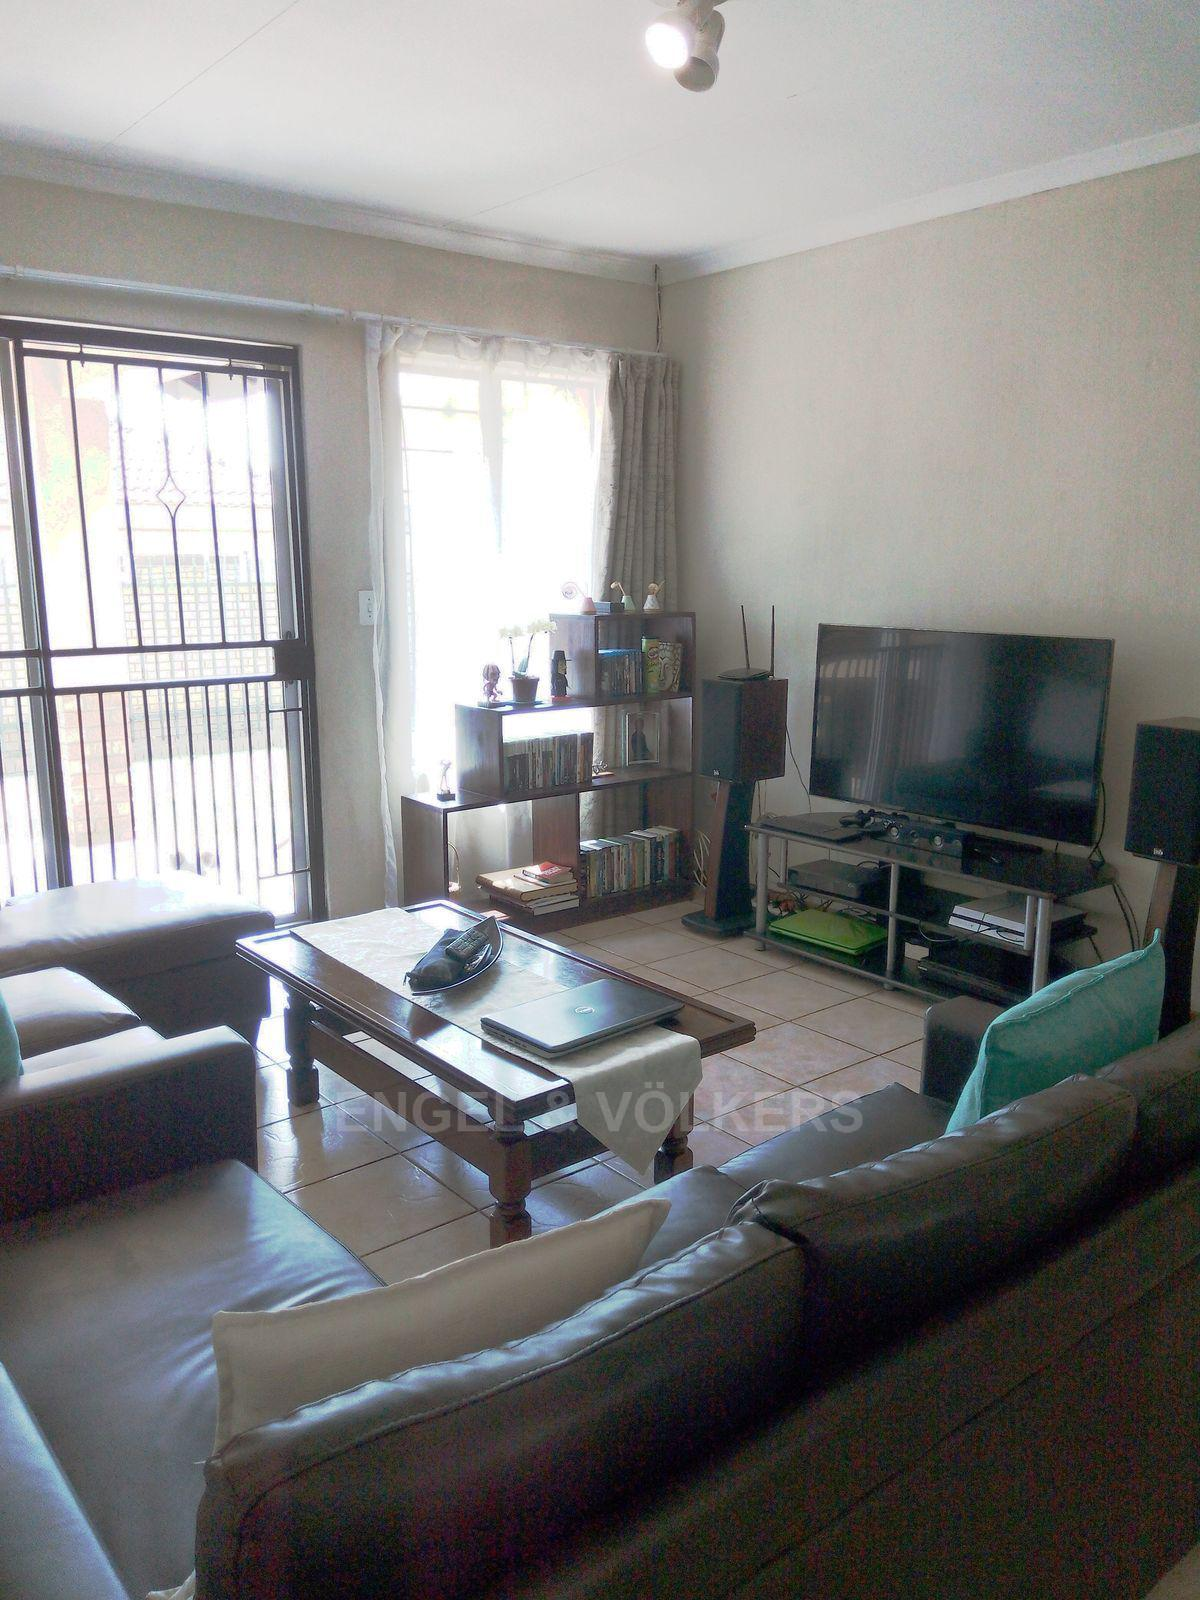 Amberfield property for sale. Ref No: 13537795. Picture no 5